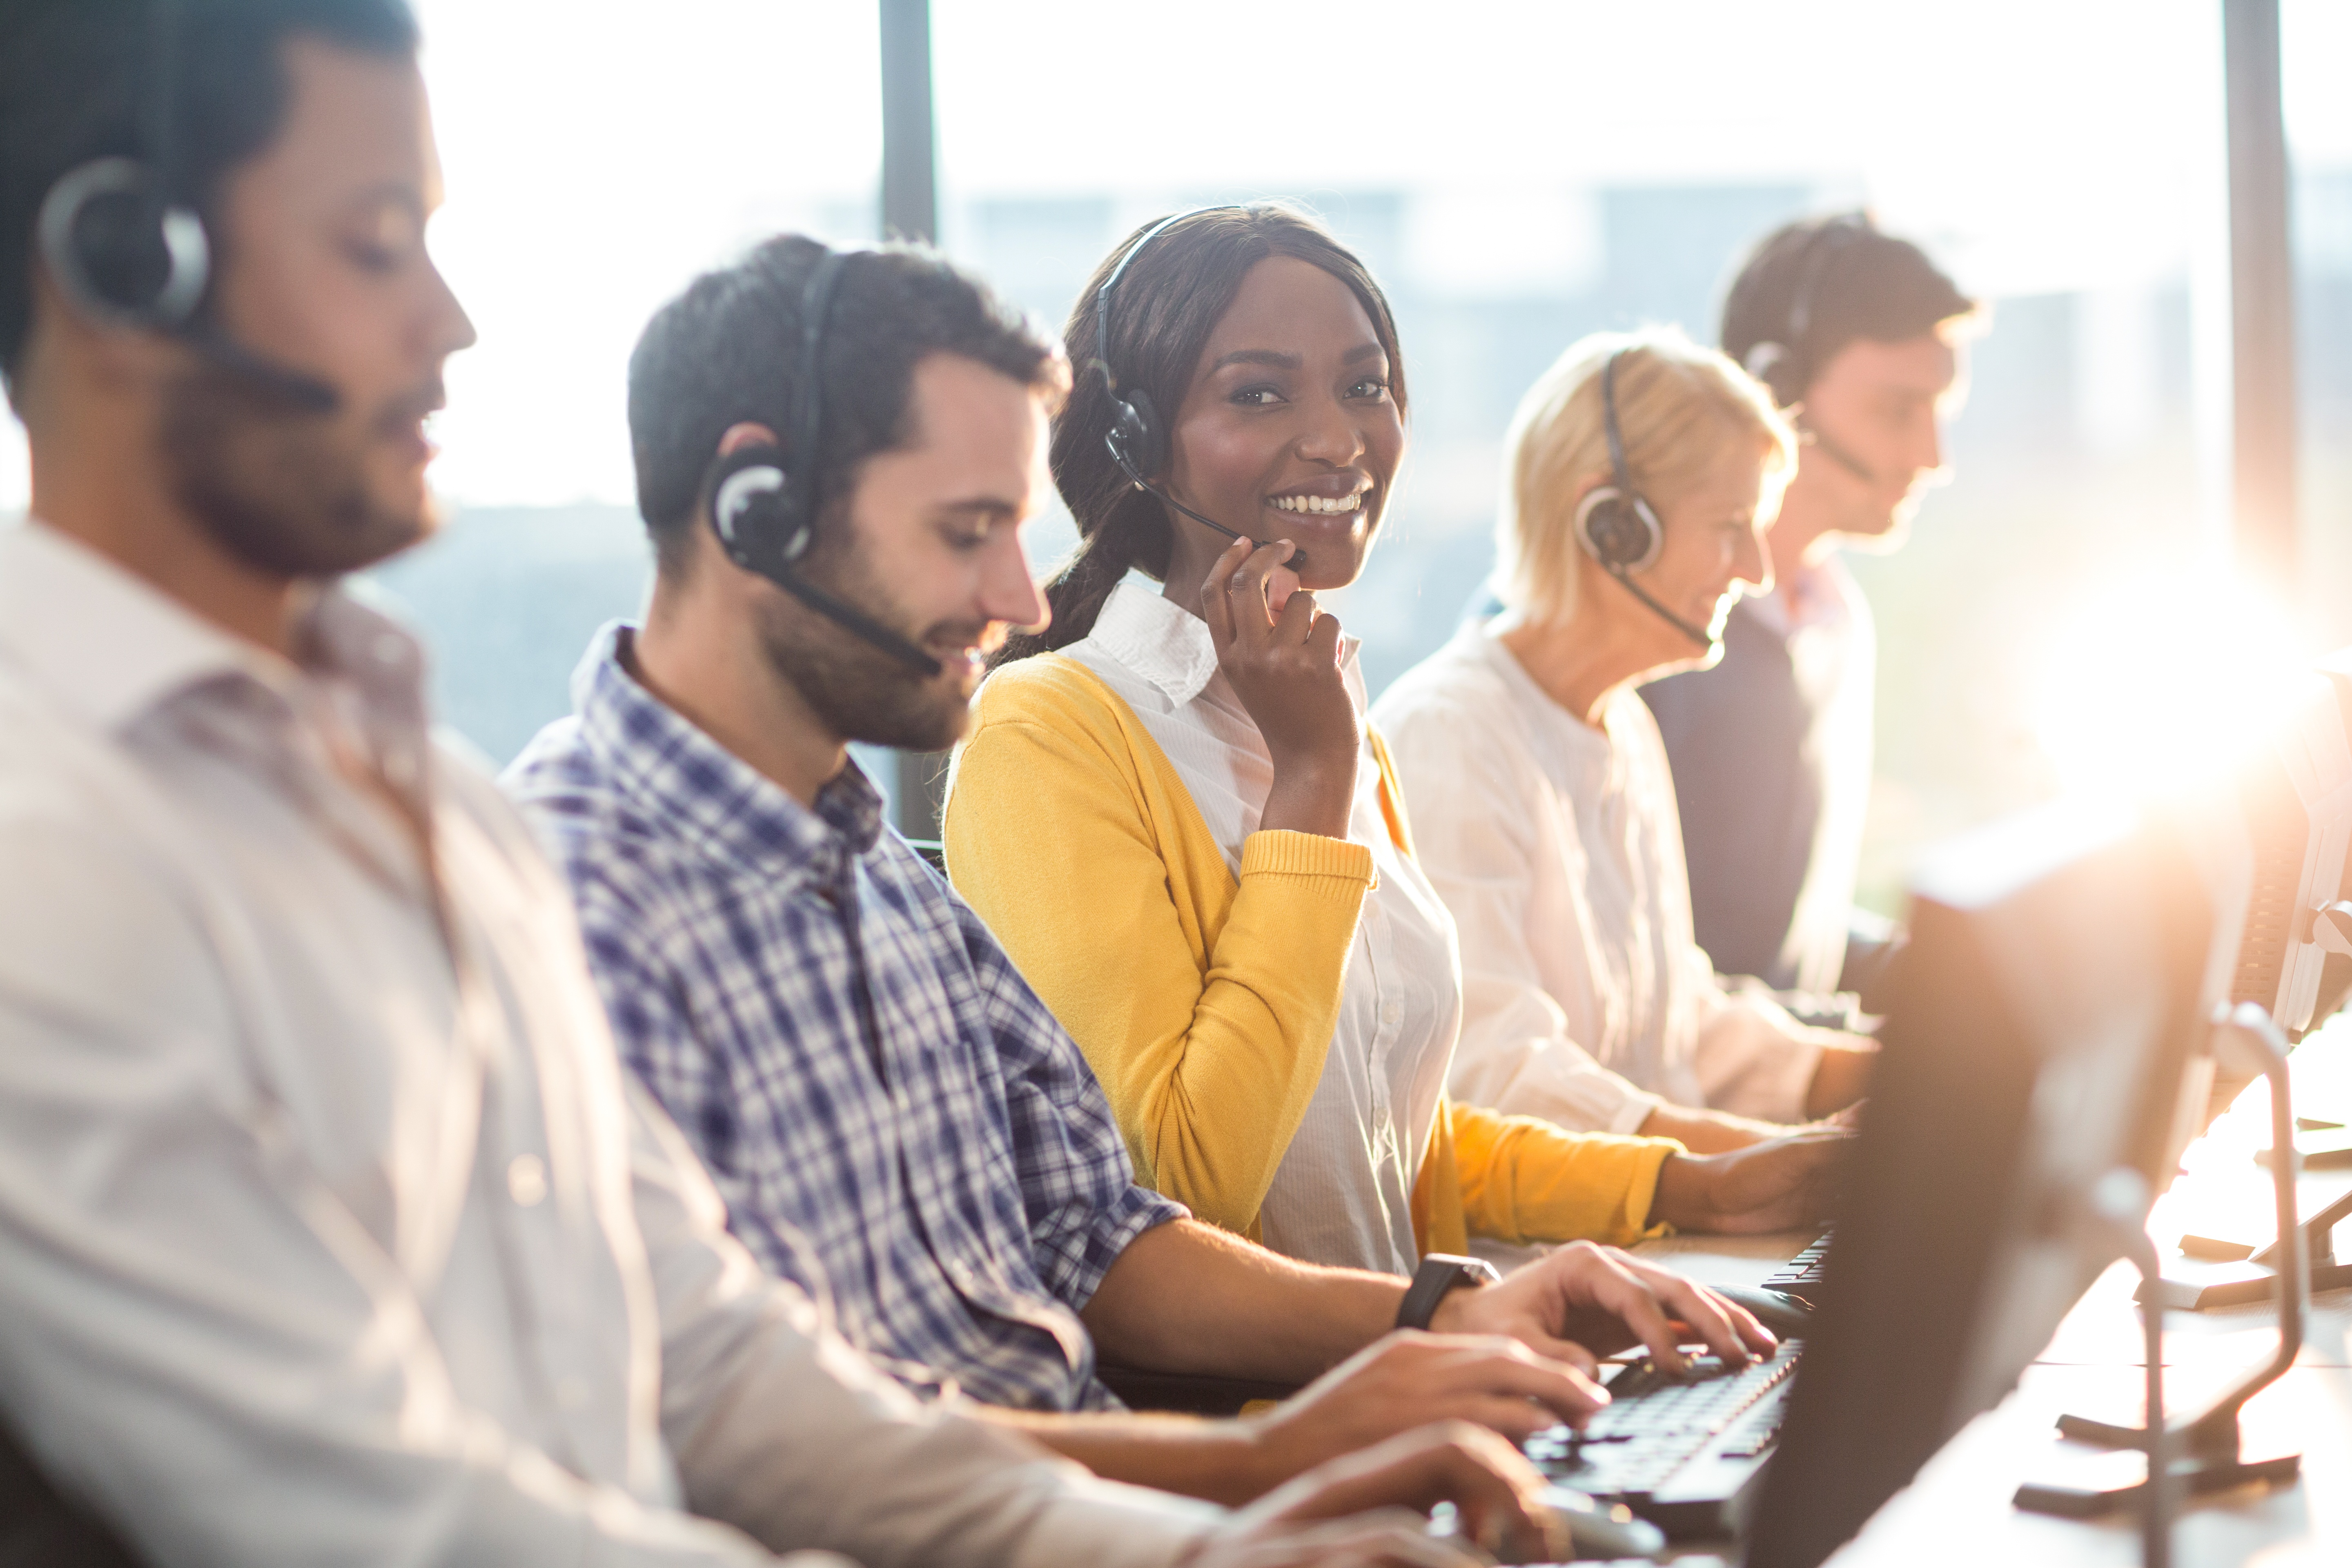 These smiling call center agents can help improve customer loyalty.